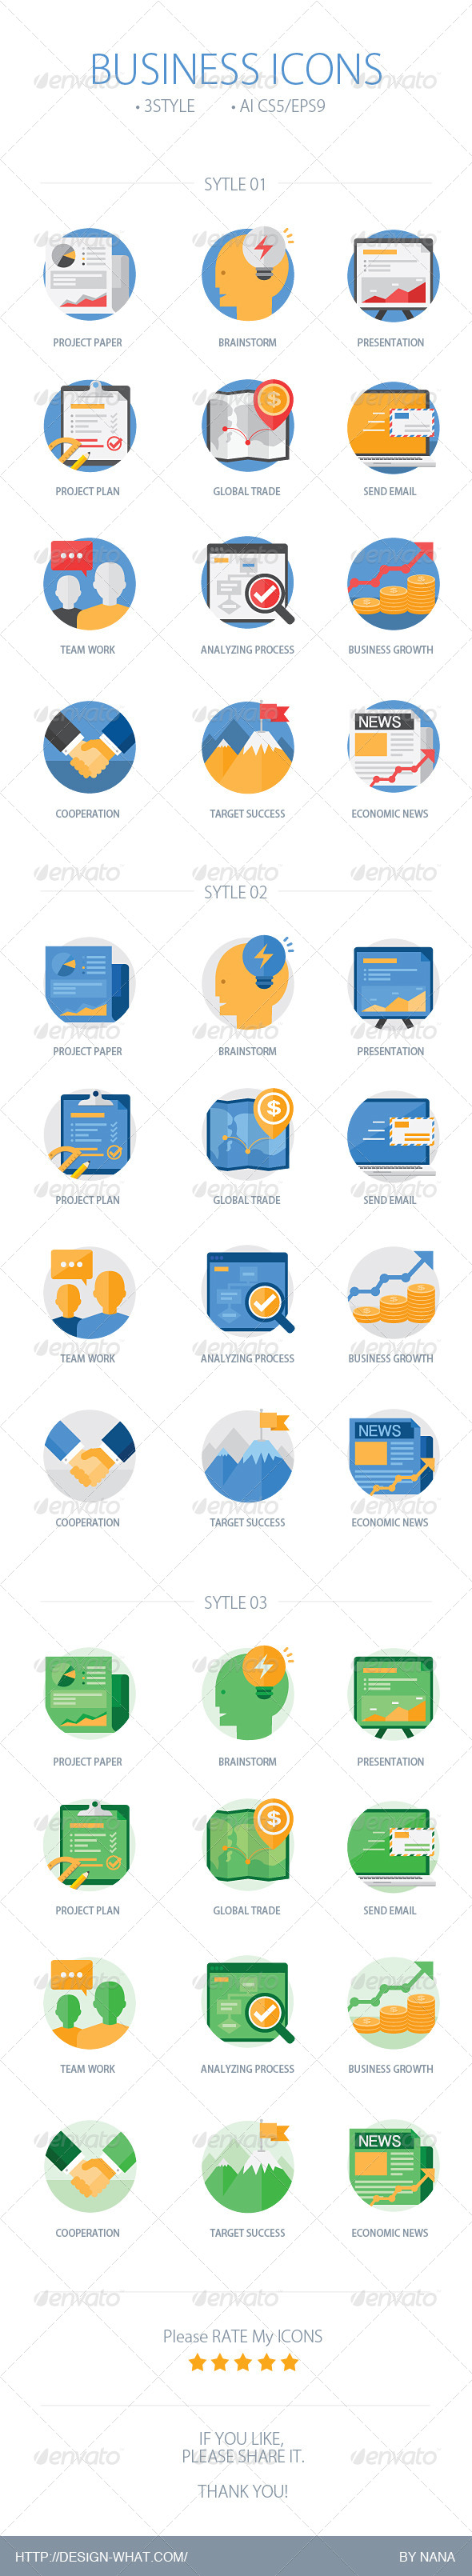 GraphicRiver Business Icons 7674013